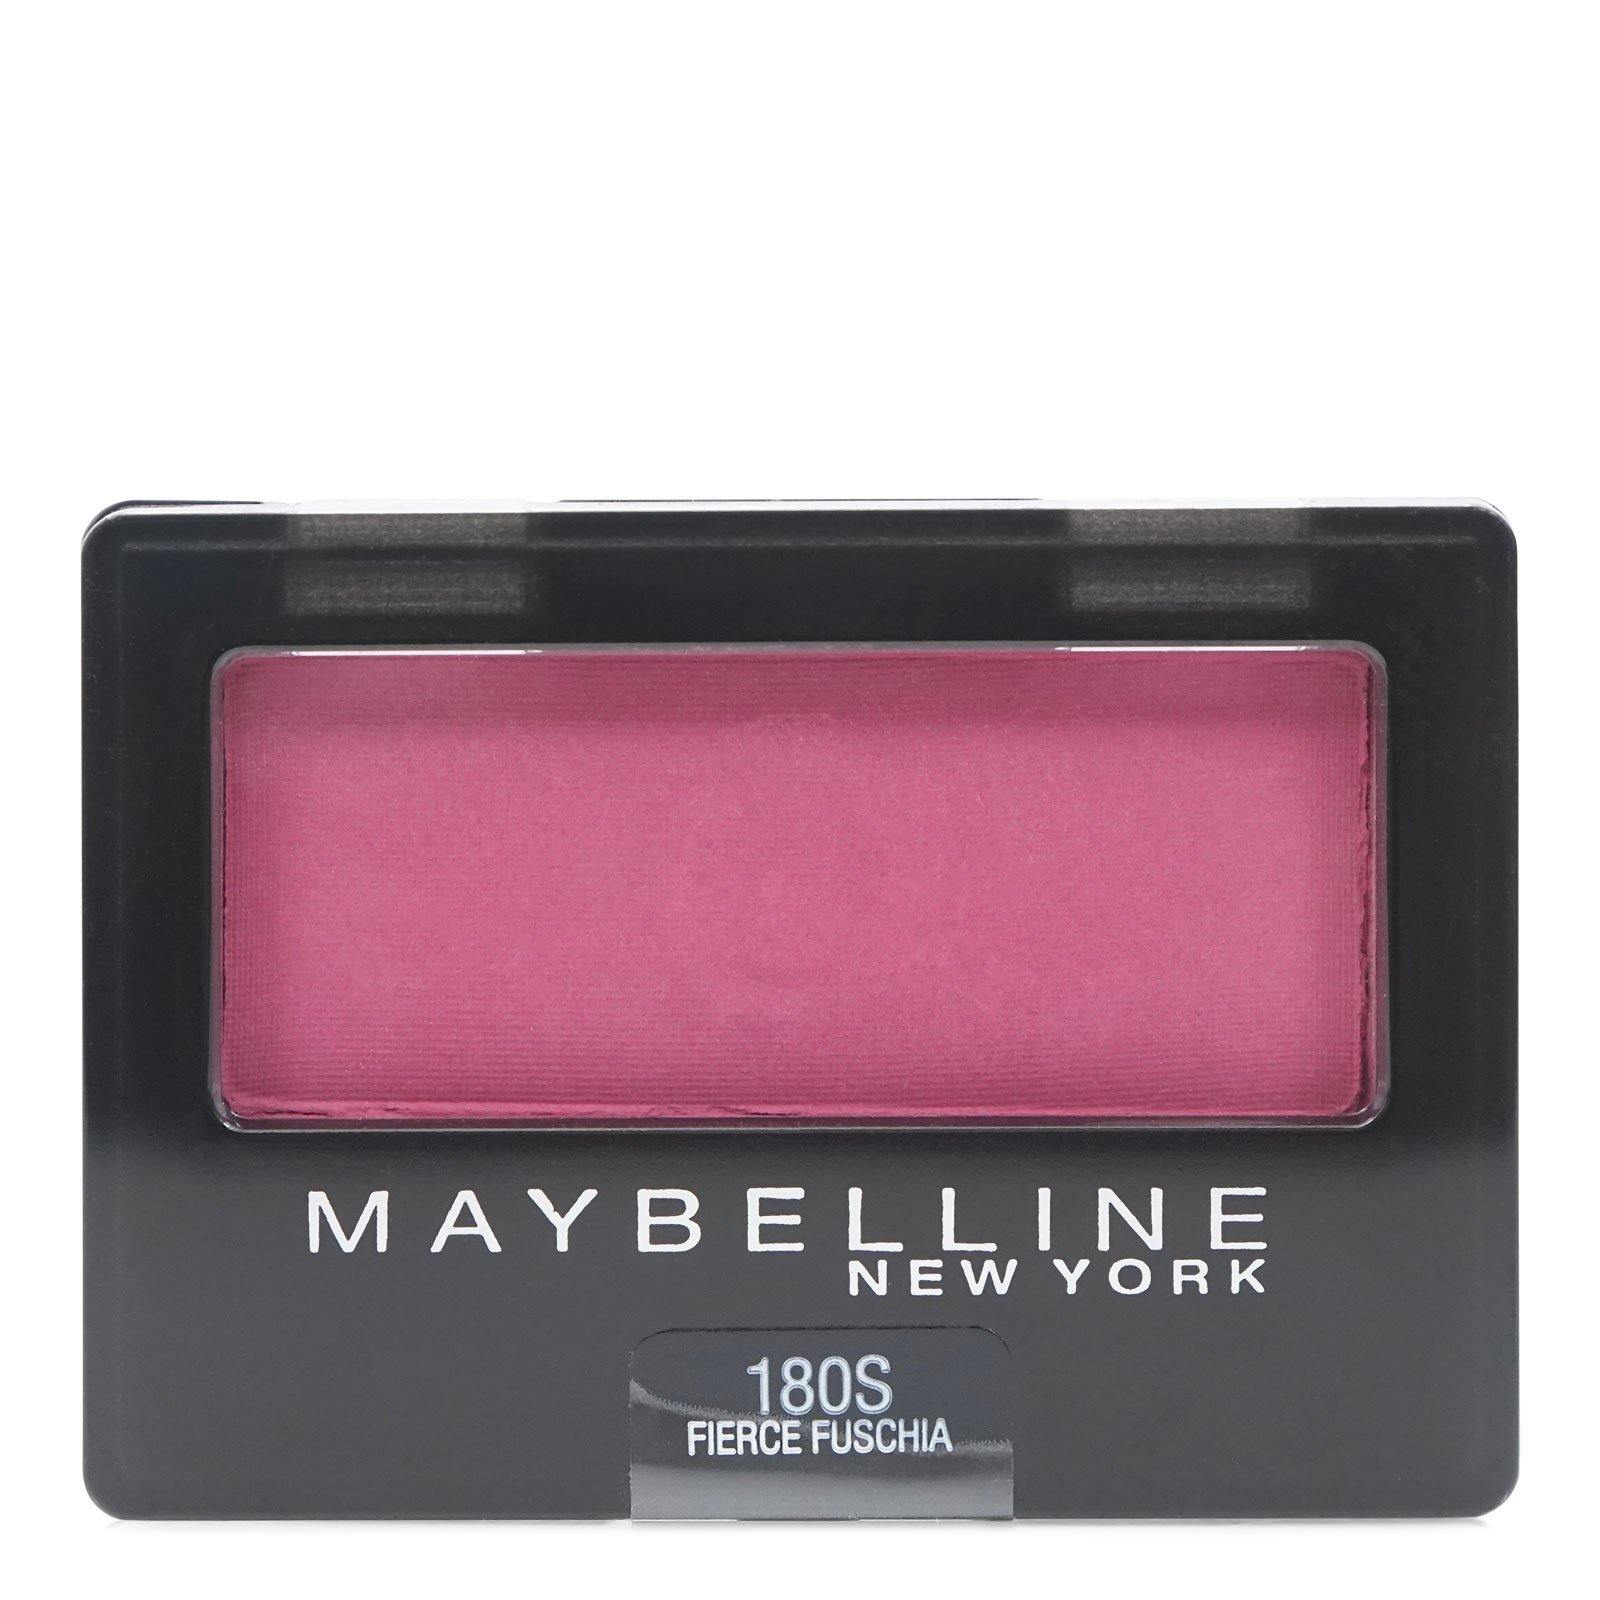 MAYBELLINE EXPERT WEAR SINGLE EYESHADOW- FIERCE FUSCHIA (24/cs)